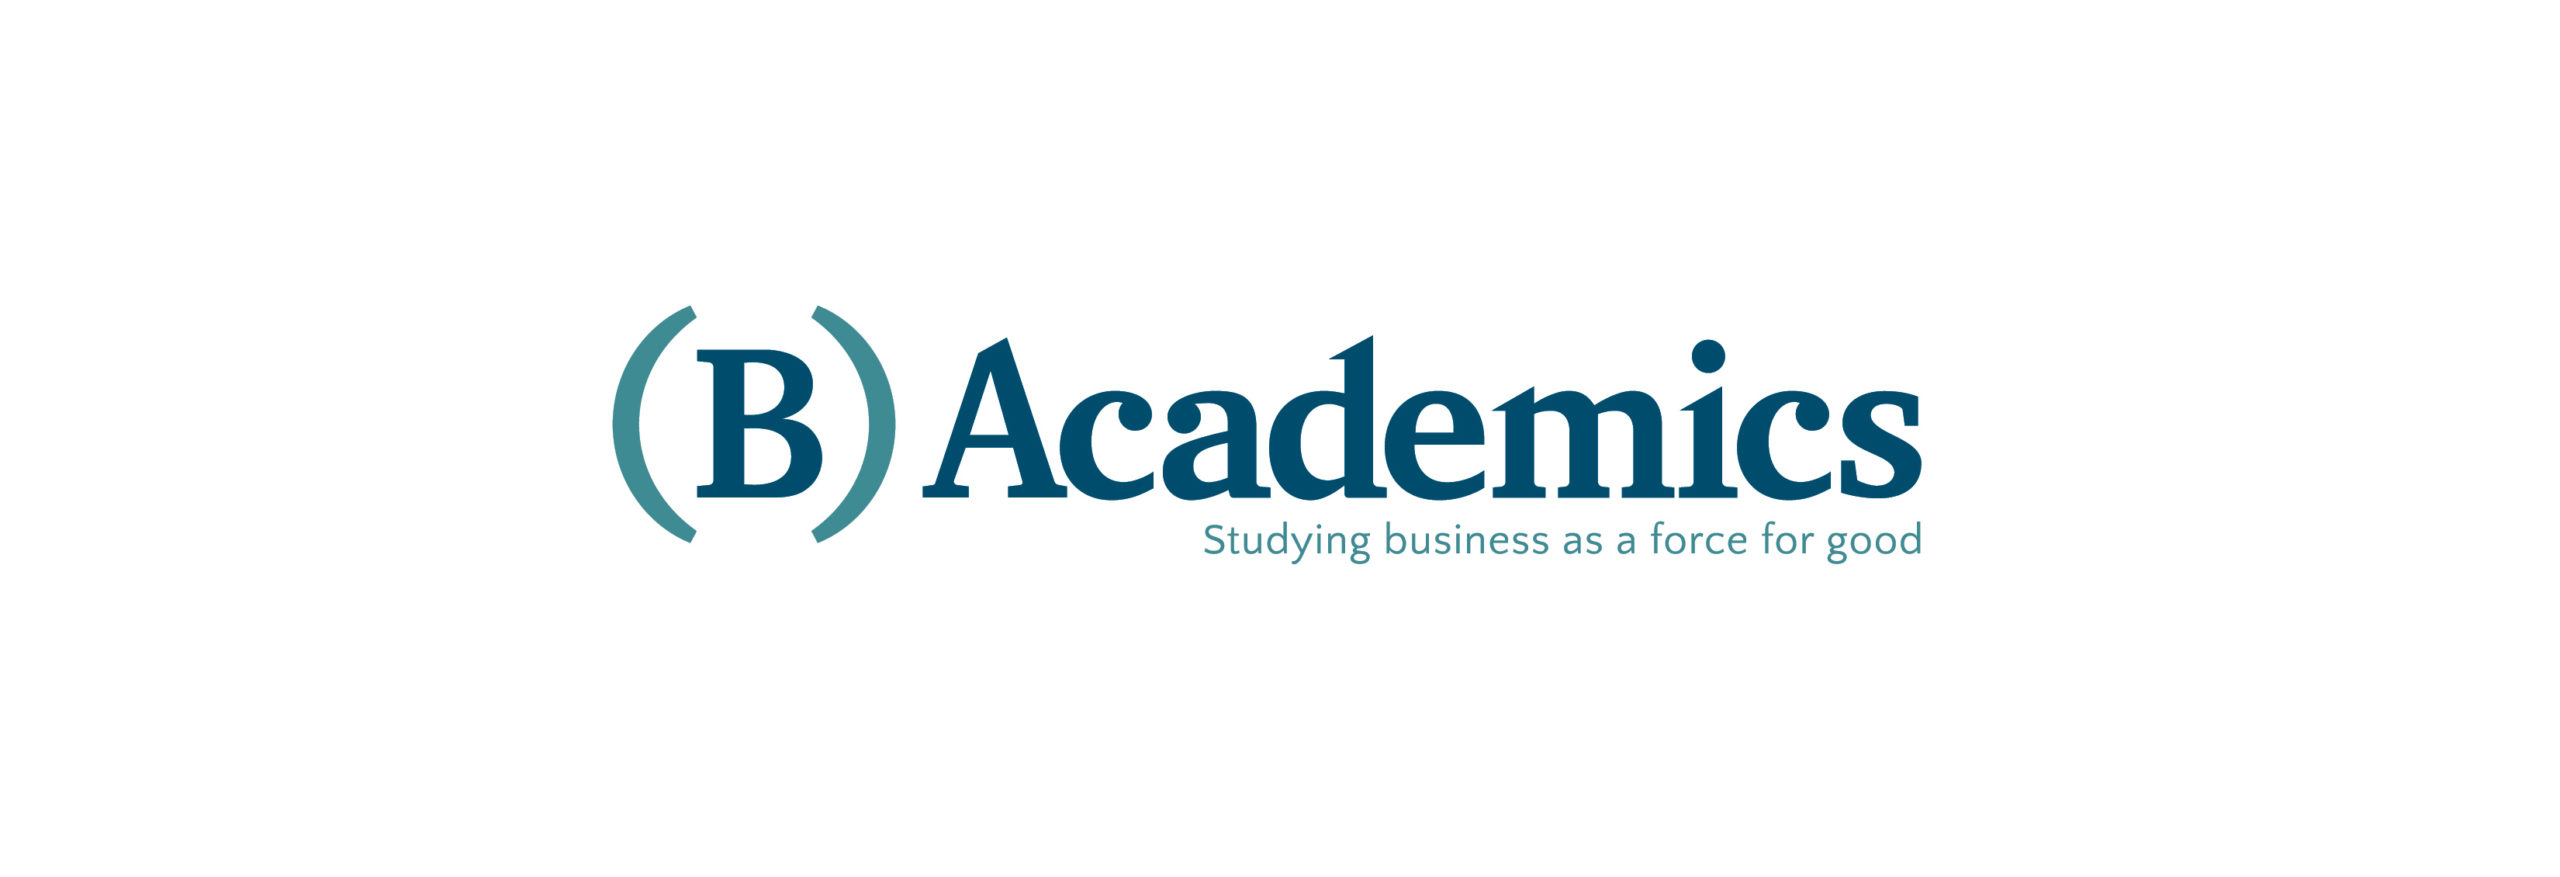 B Academics Main Logo with Tagline